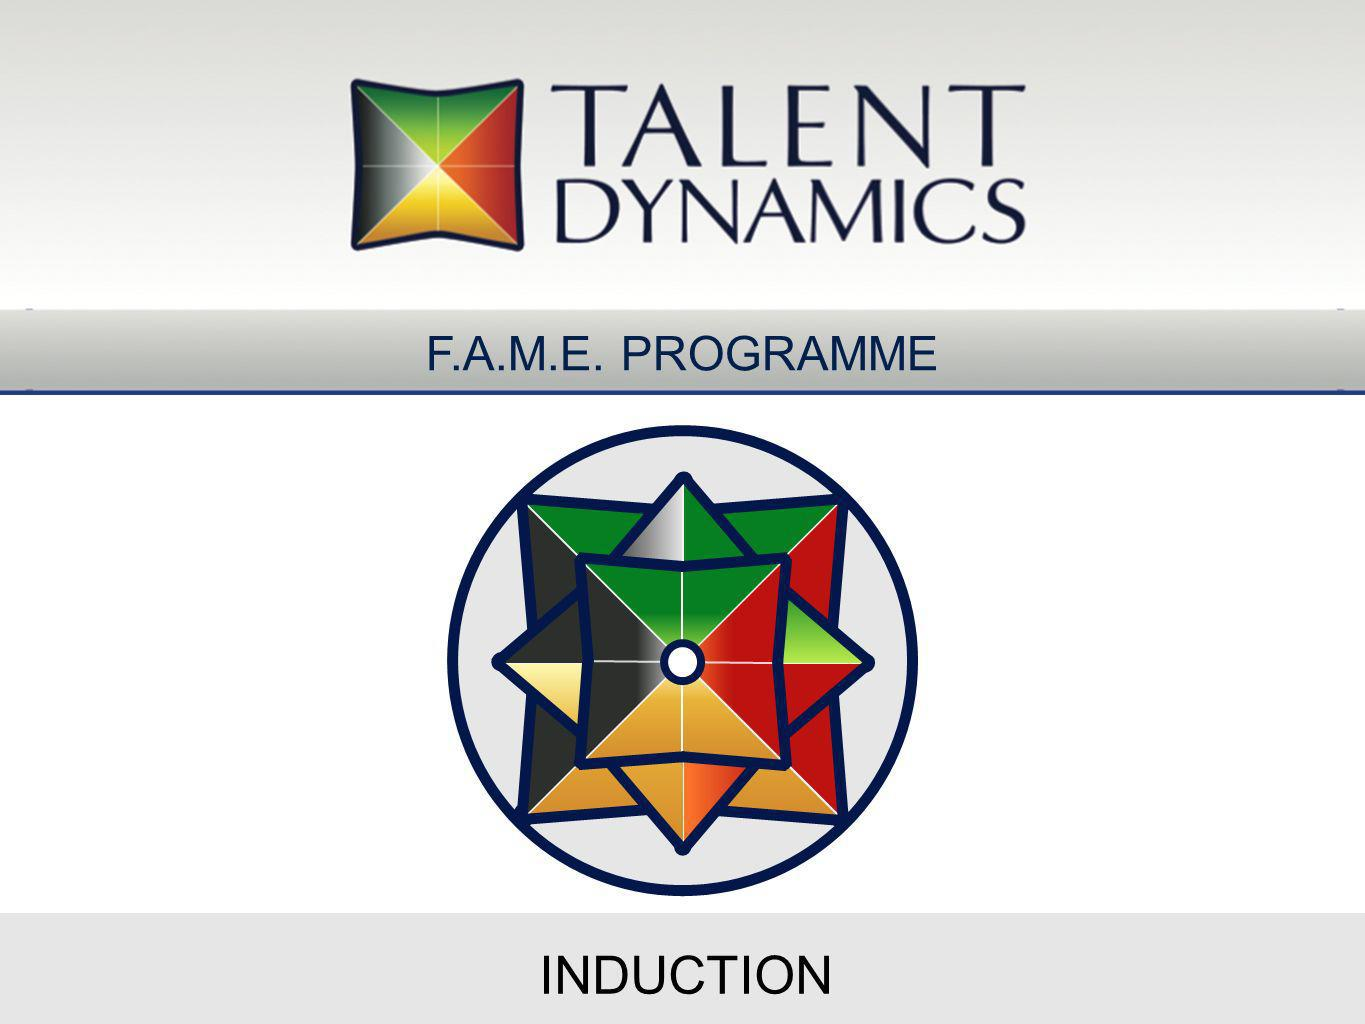 INDUCTION F.A.M.E. PROGRAMME